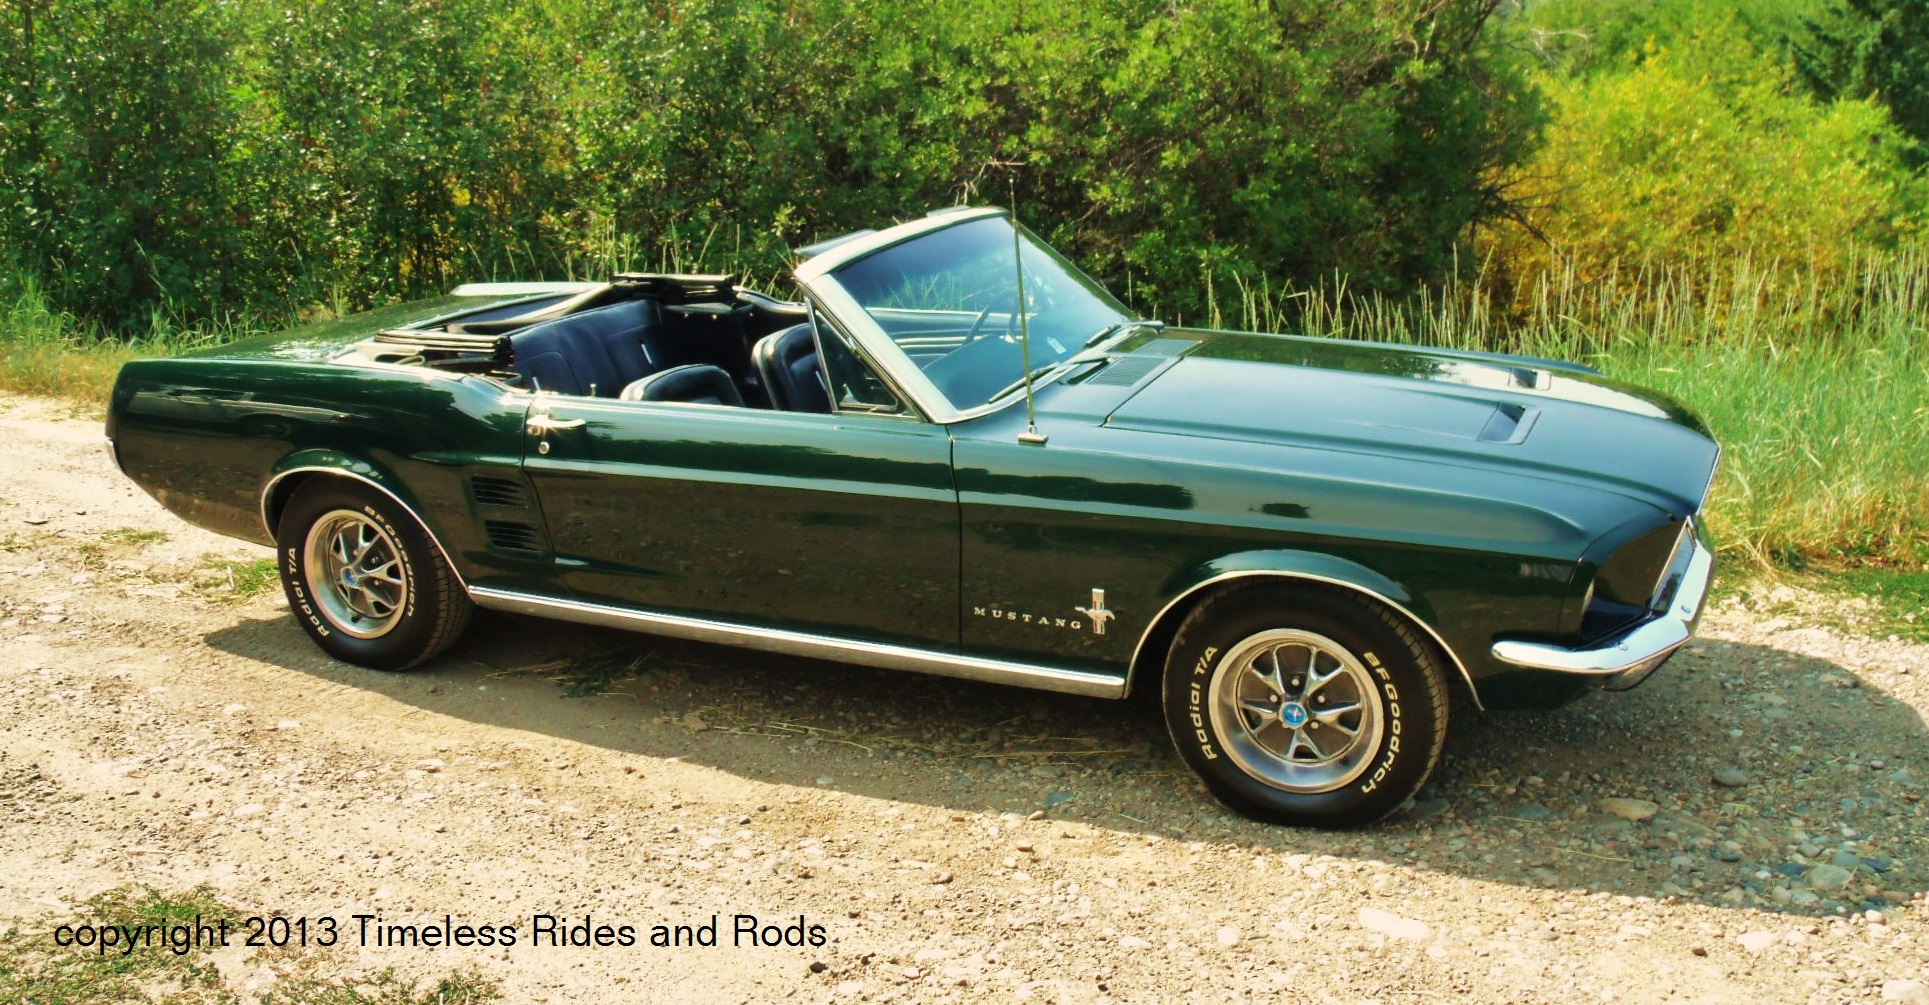 1967 Mustang Convertible Is Completed Timeless Rides